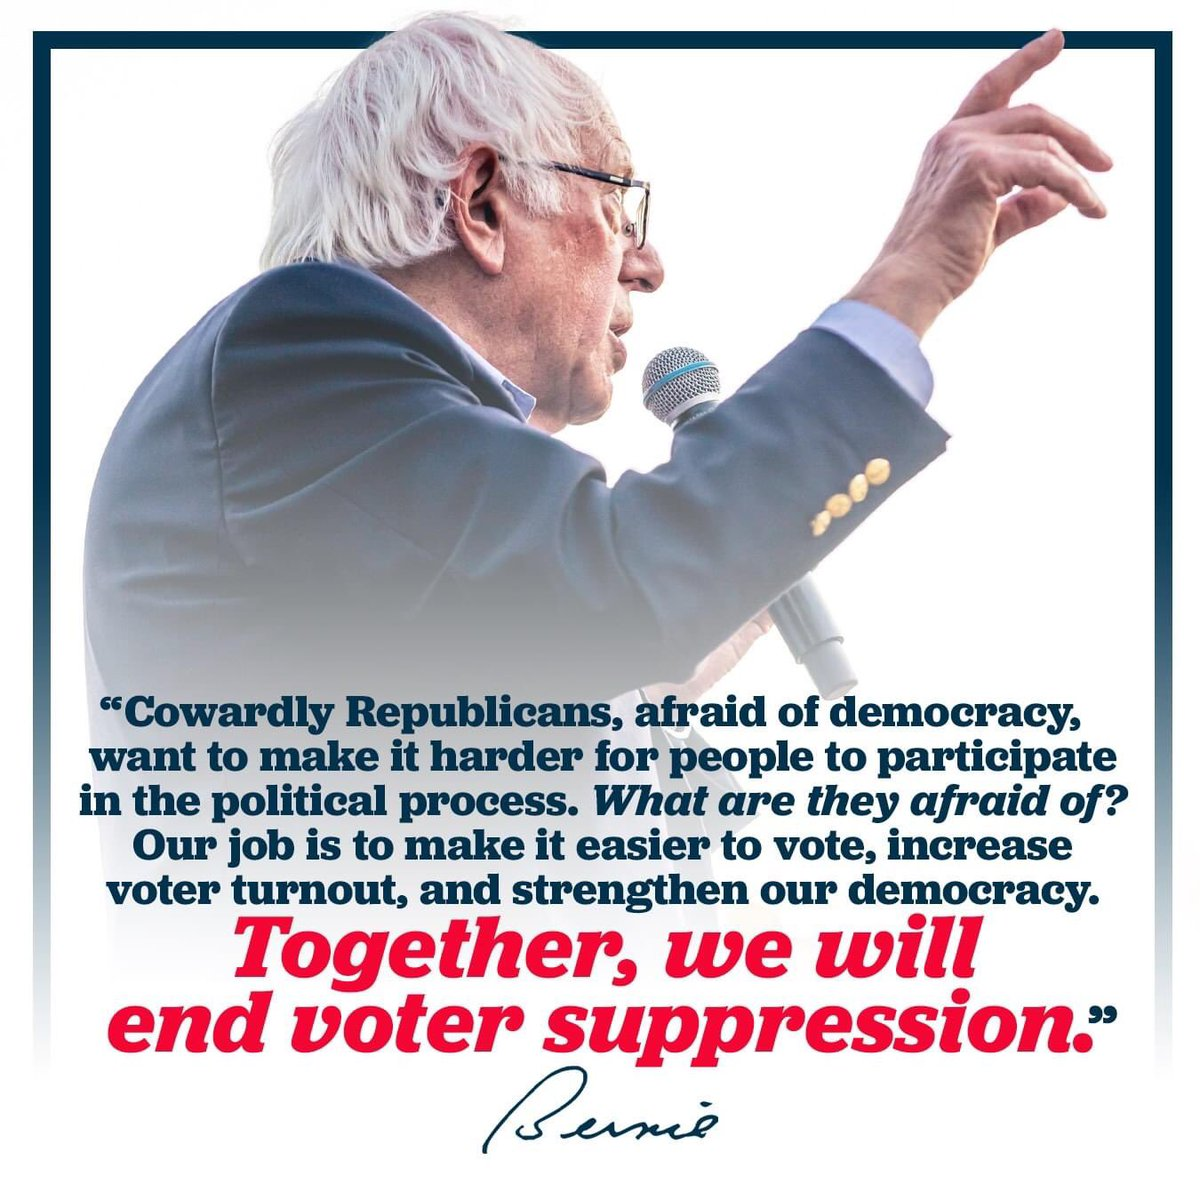 """""""The attempts from Republicans in Georgia – and around the country – to suppress the vote and curtail our electoral democracy should offend the conscience of every American. The fight for voting rights is a fight for justice."""" #BernieSanders"""